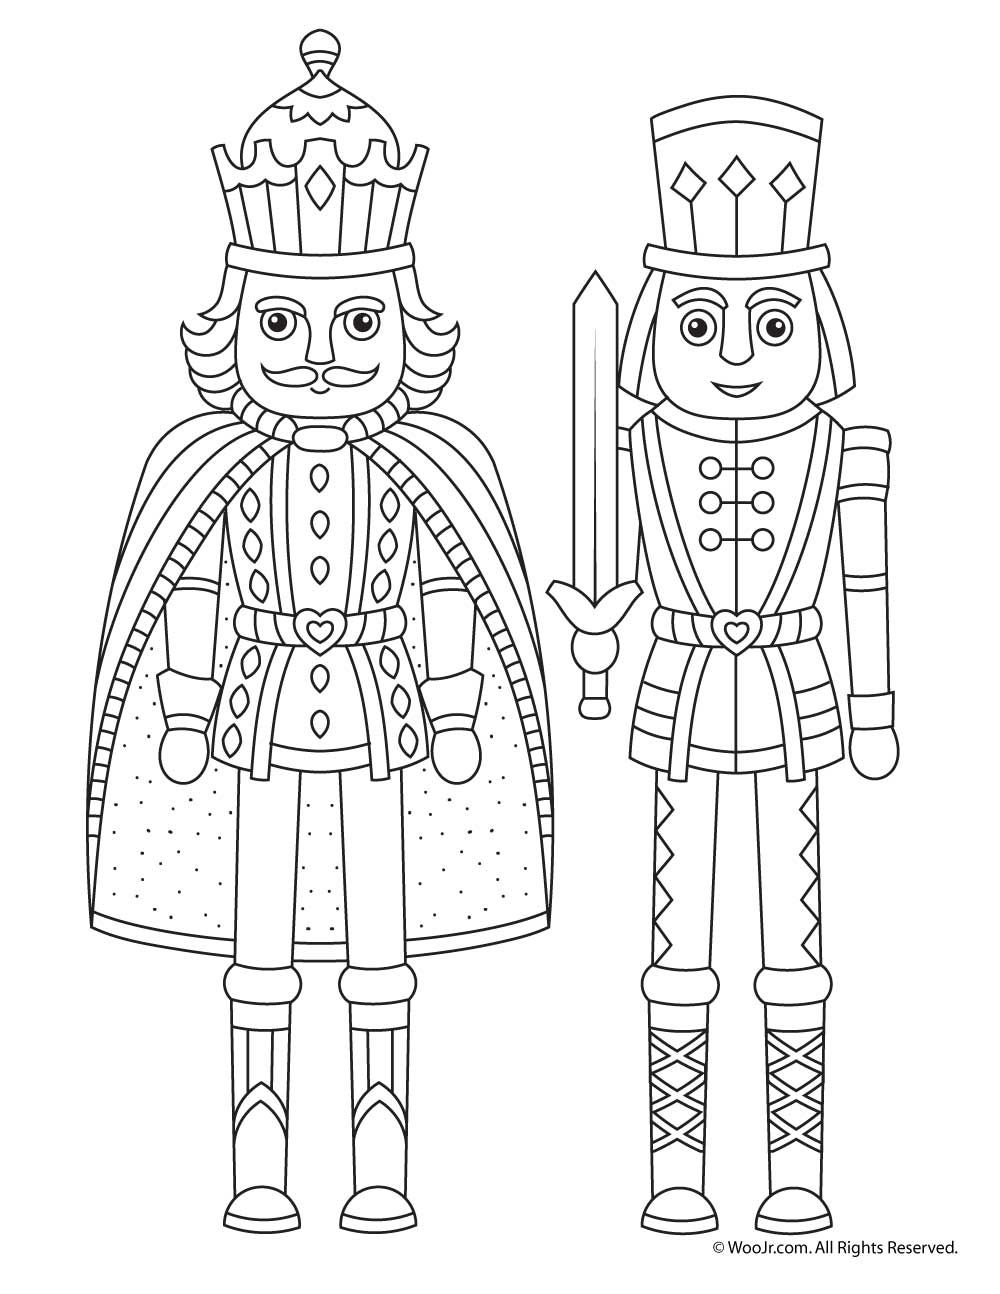 Nutcracker Christmas Coloring Page Christmas Colors Christmas